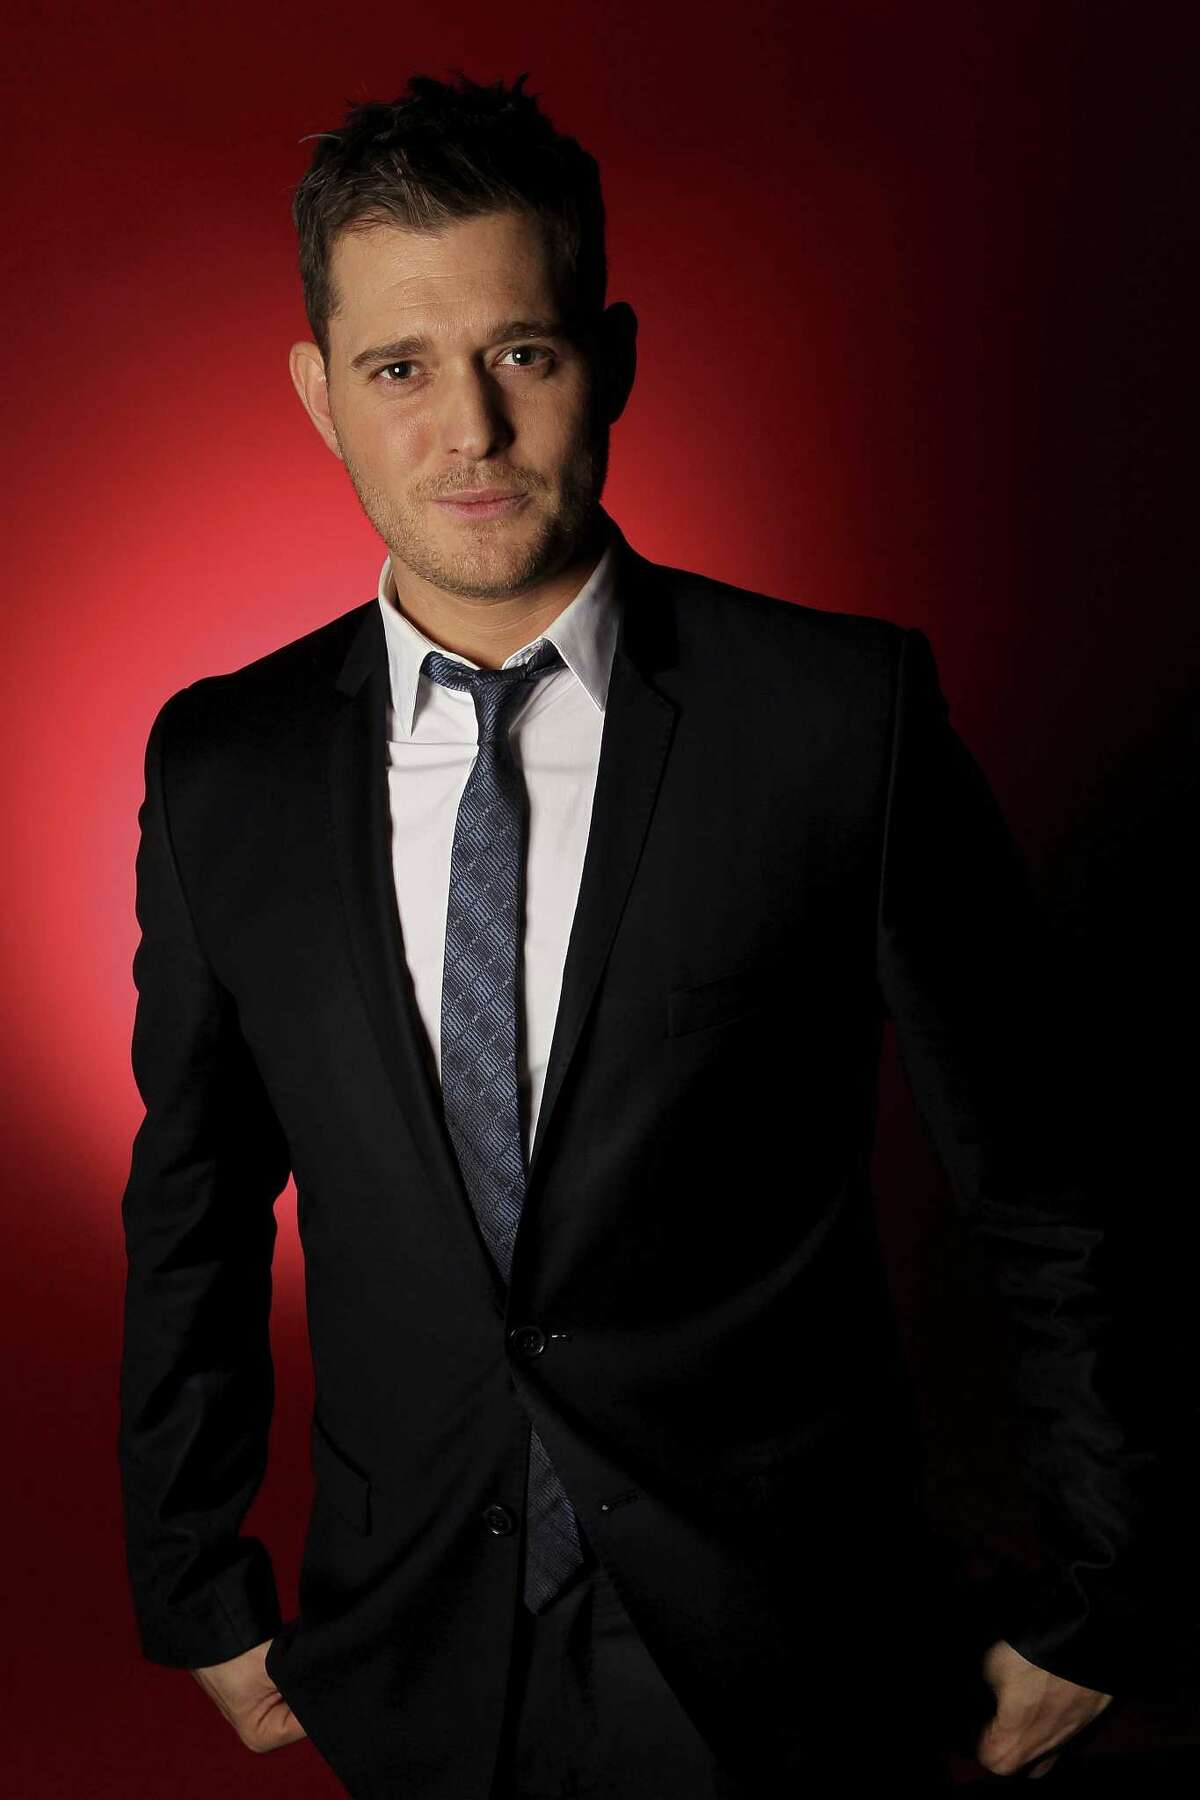 Oct. 19: Michael Bublé to perform at the AT&T Center. Visit www.ticketmaster.com.